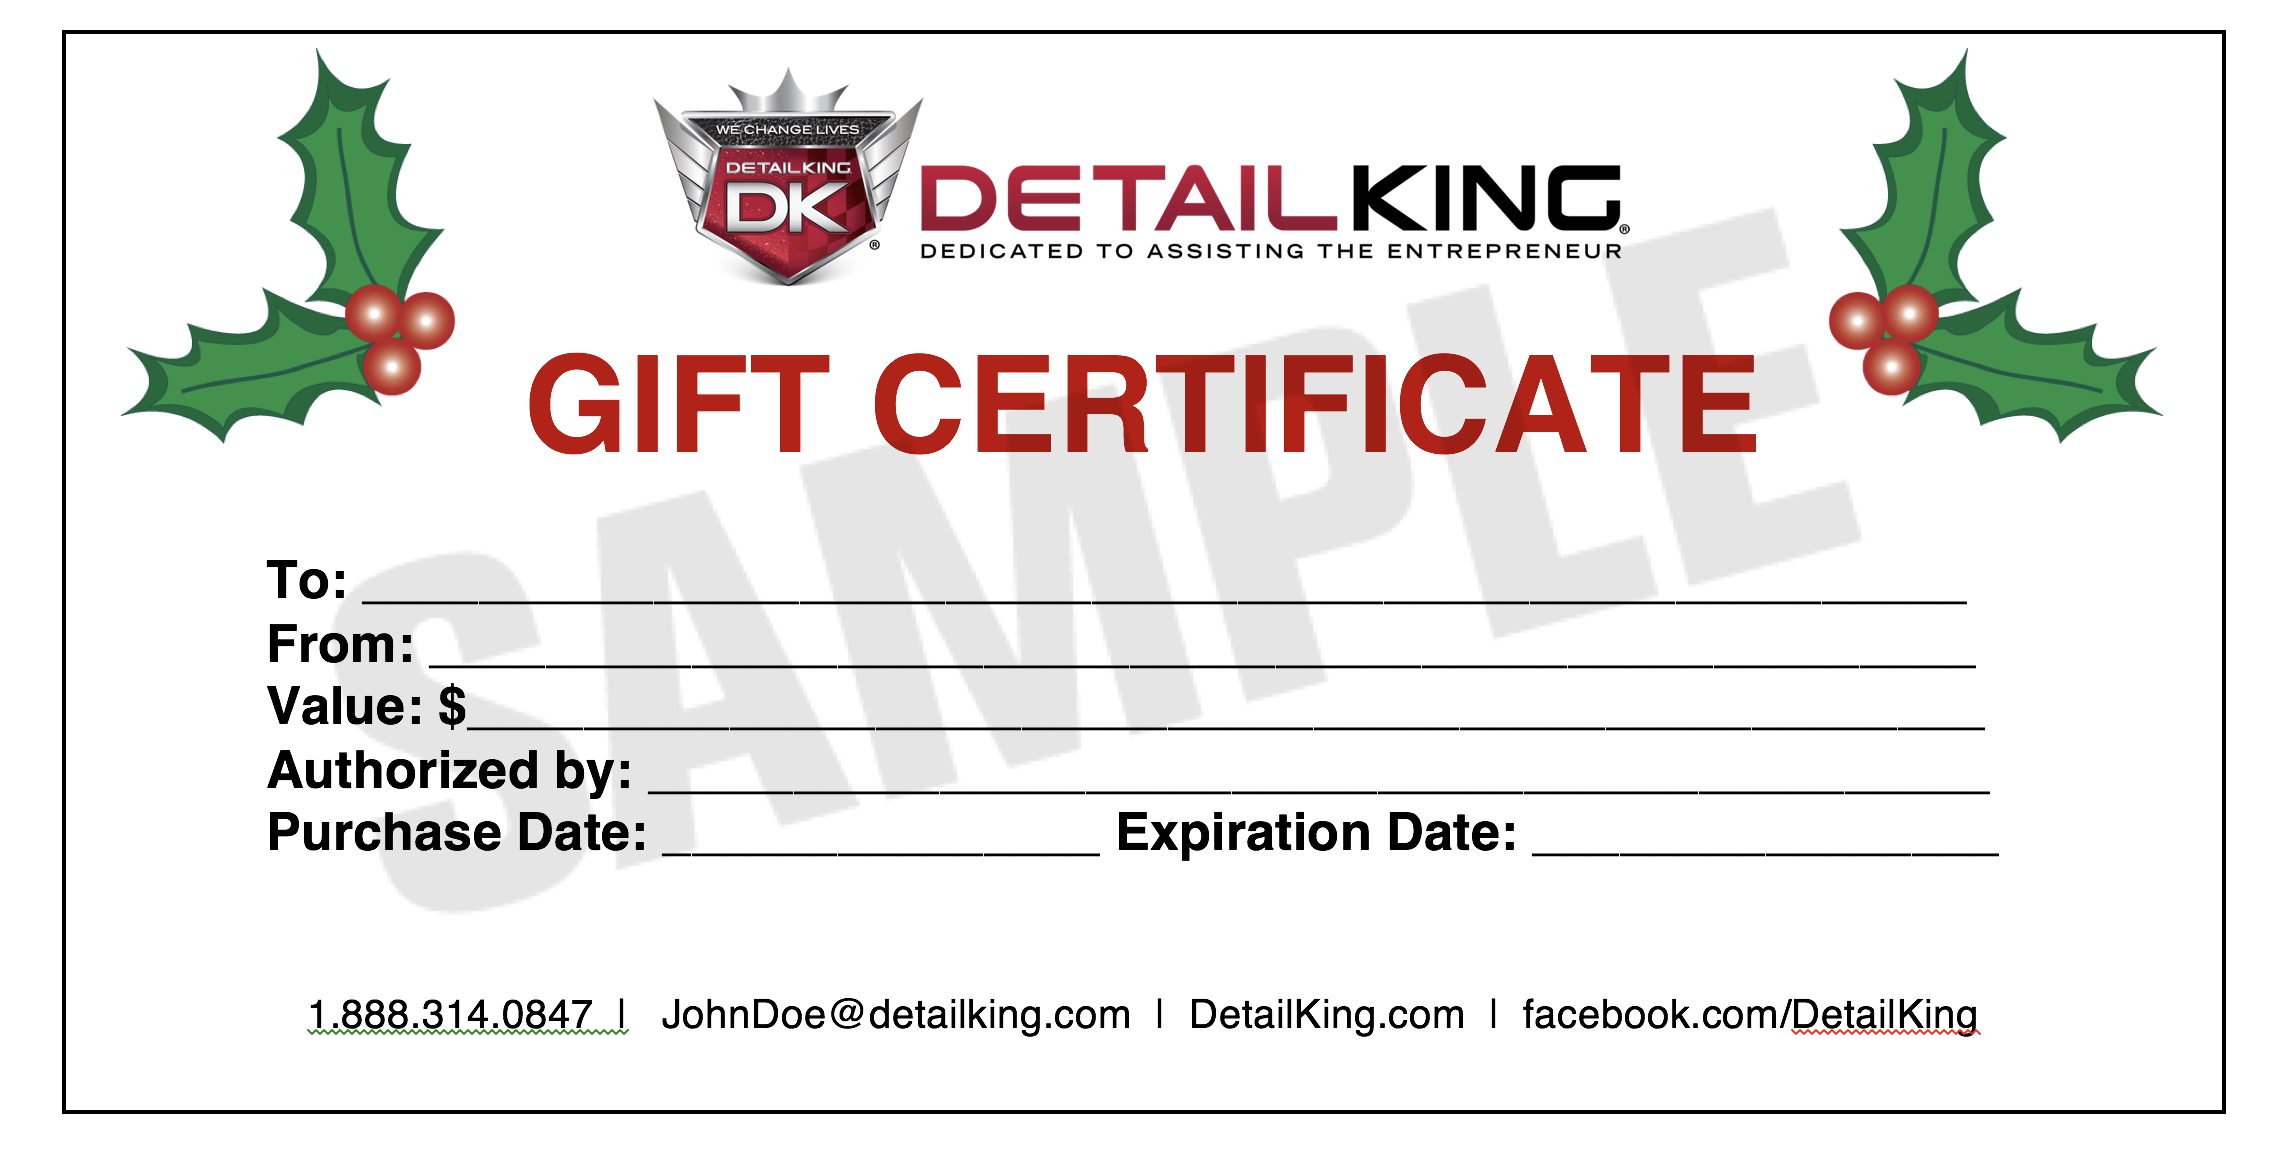 Give your customers a gift for any season auto detailing business dksamplexmasgiftcertificicate offering gift certificate colourmoves